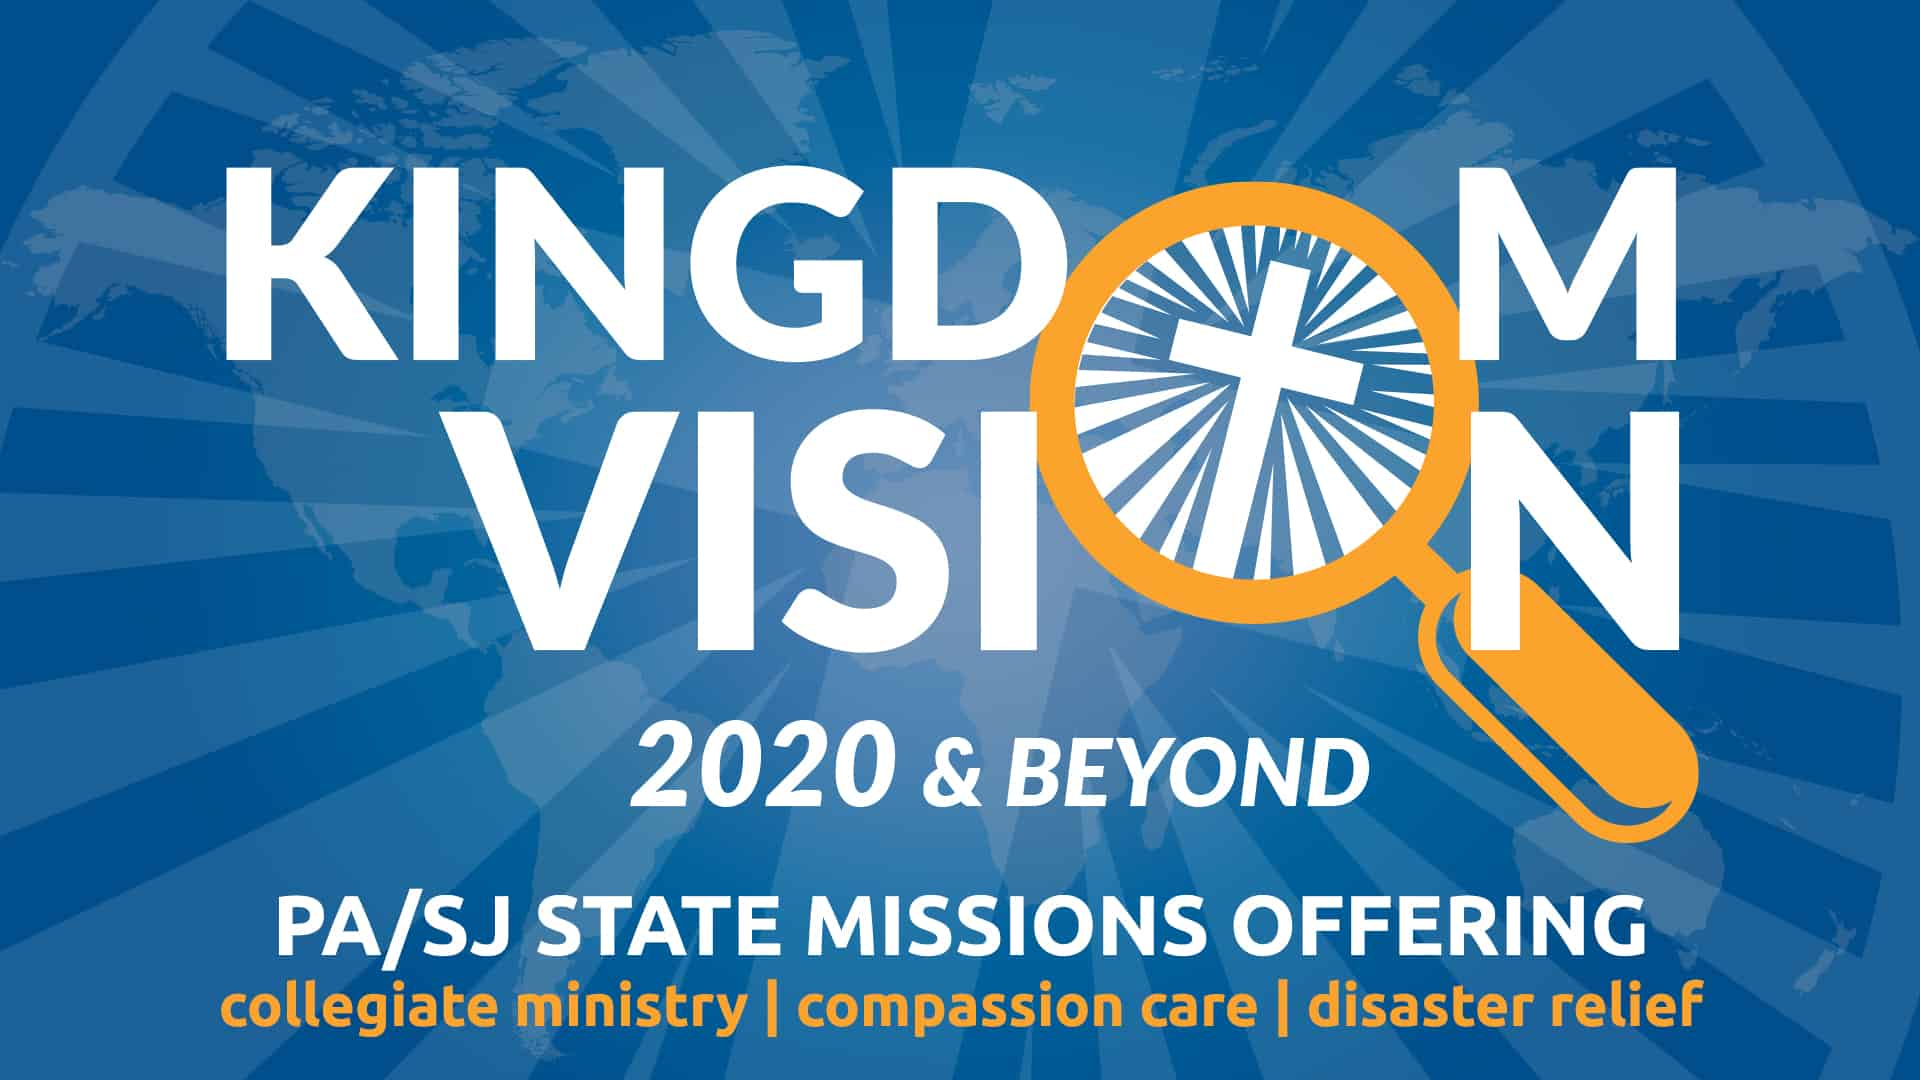 Kingdom Vision State Missions Offering